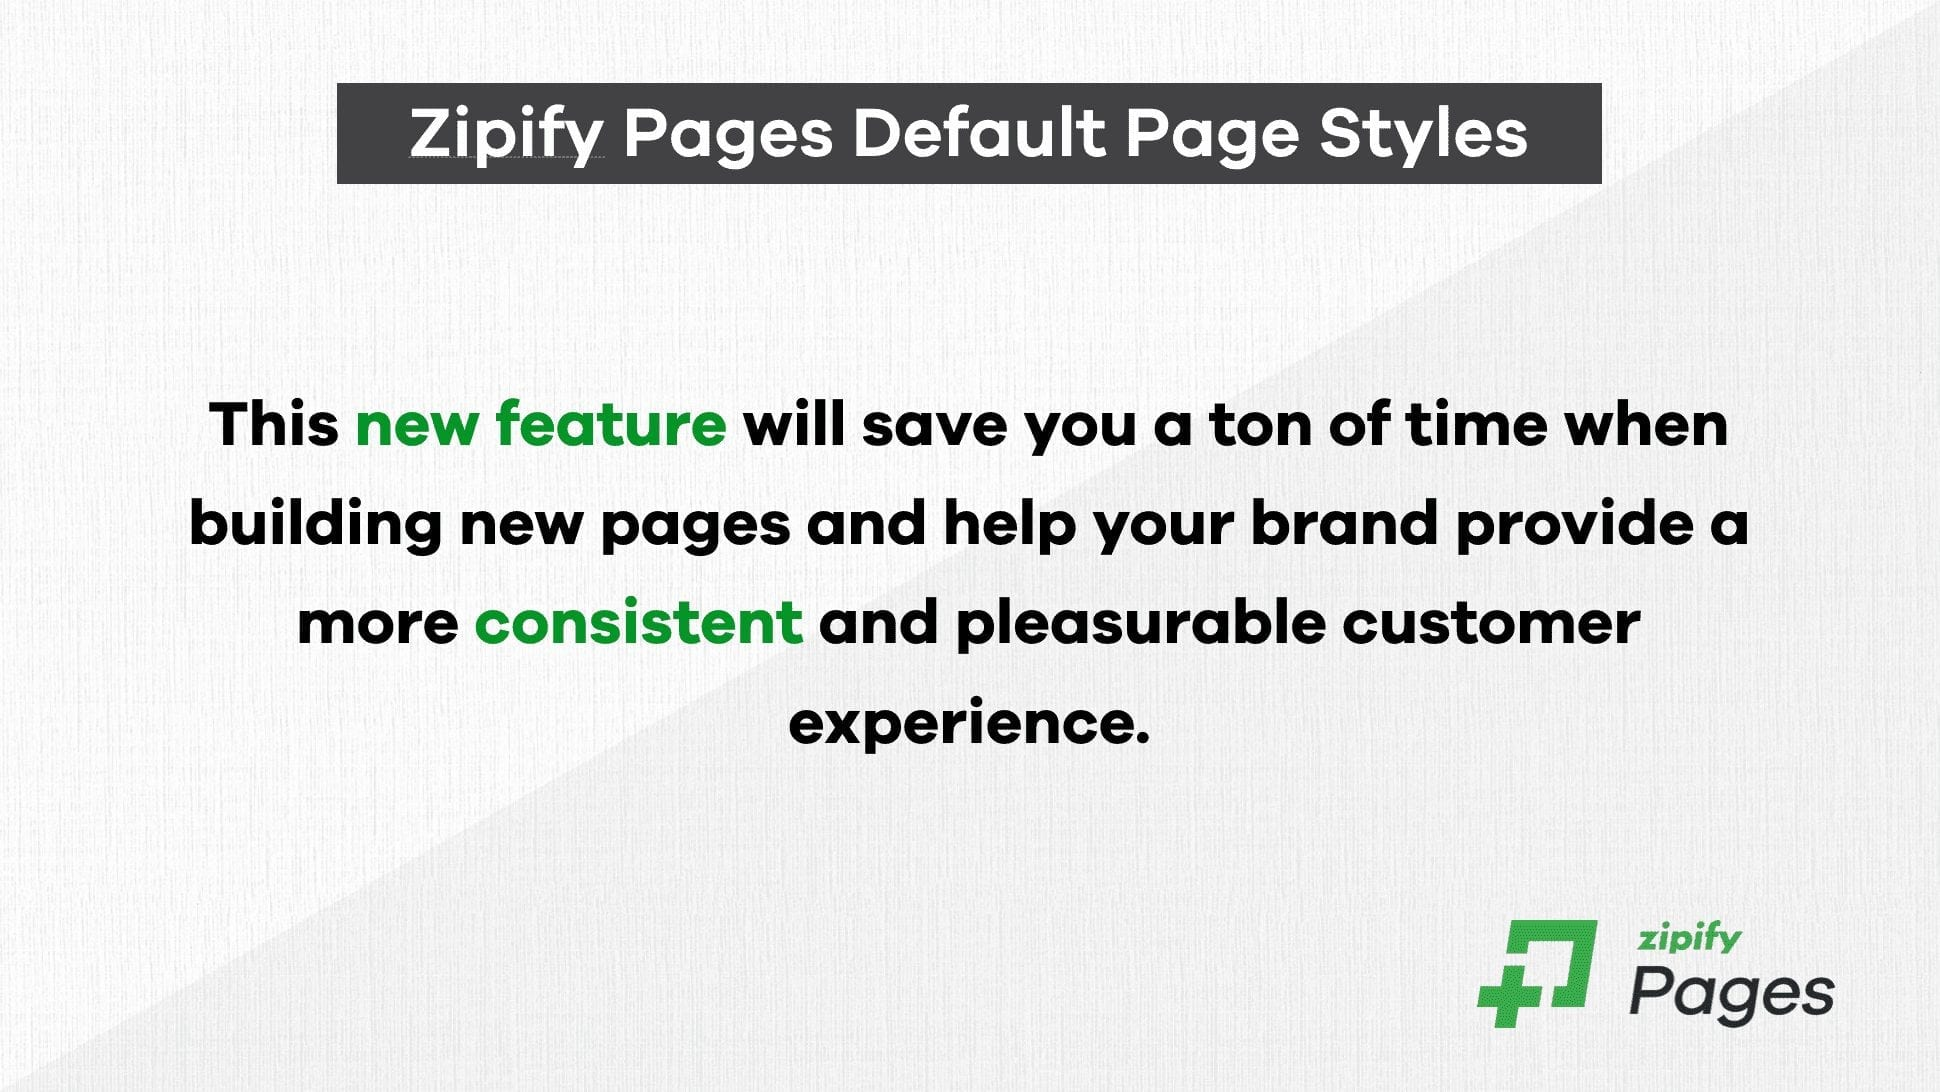 Zipify default page styles